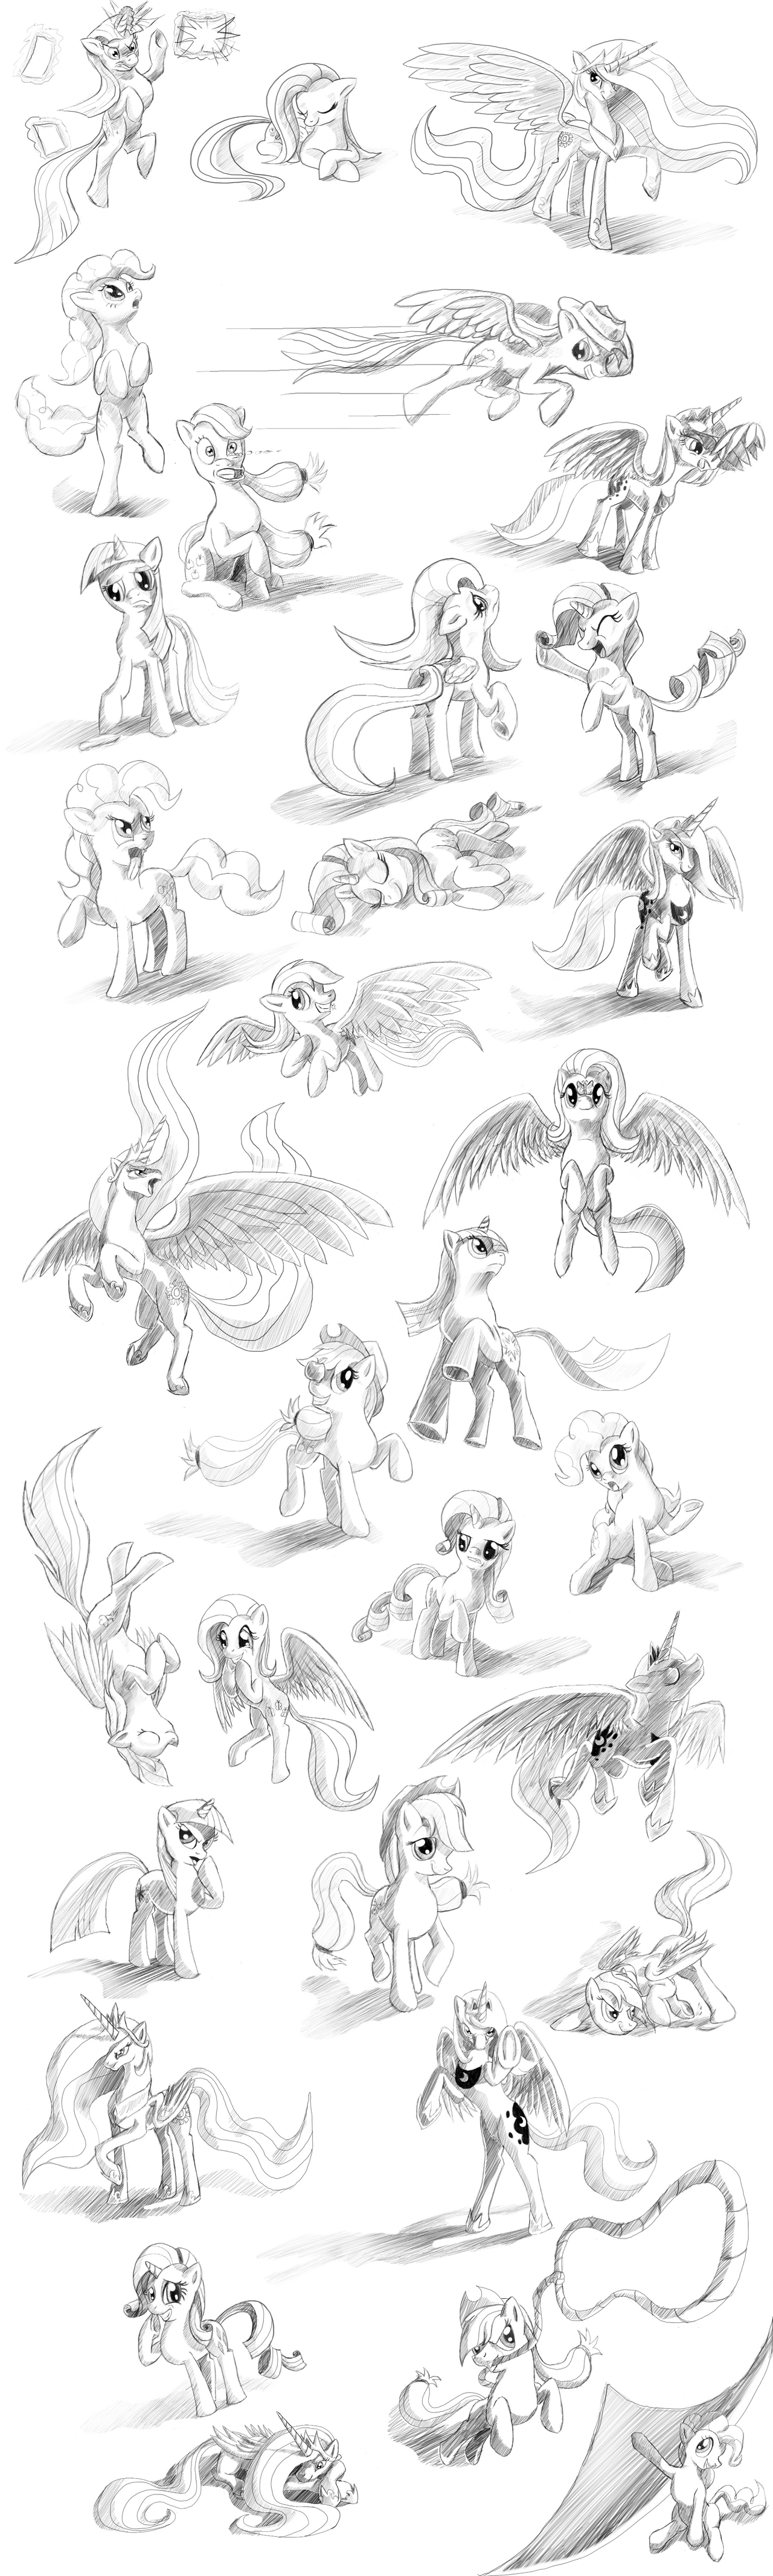 Huge Pony Sketch Dump by Tsitra360